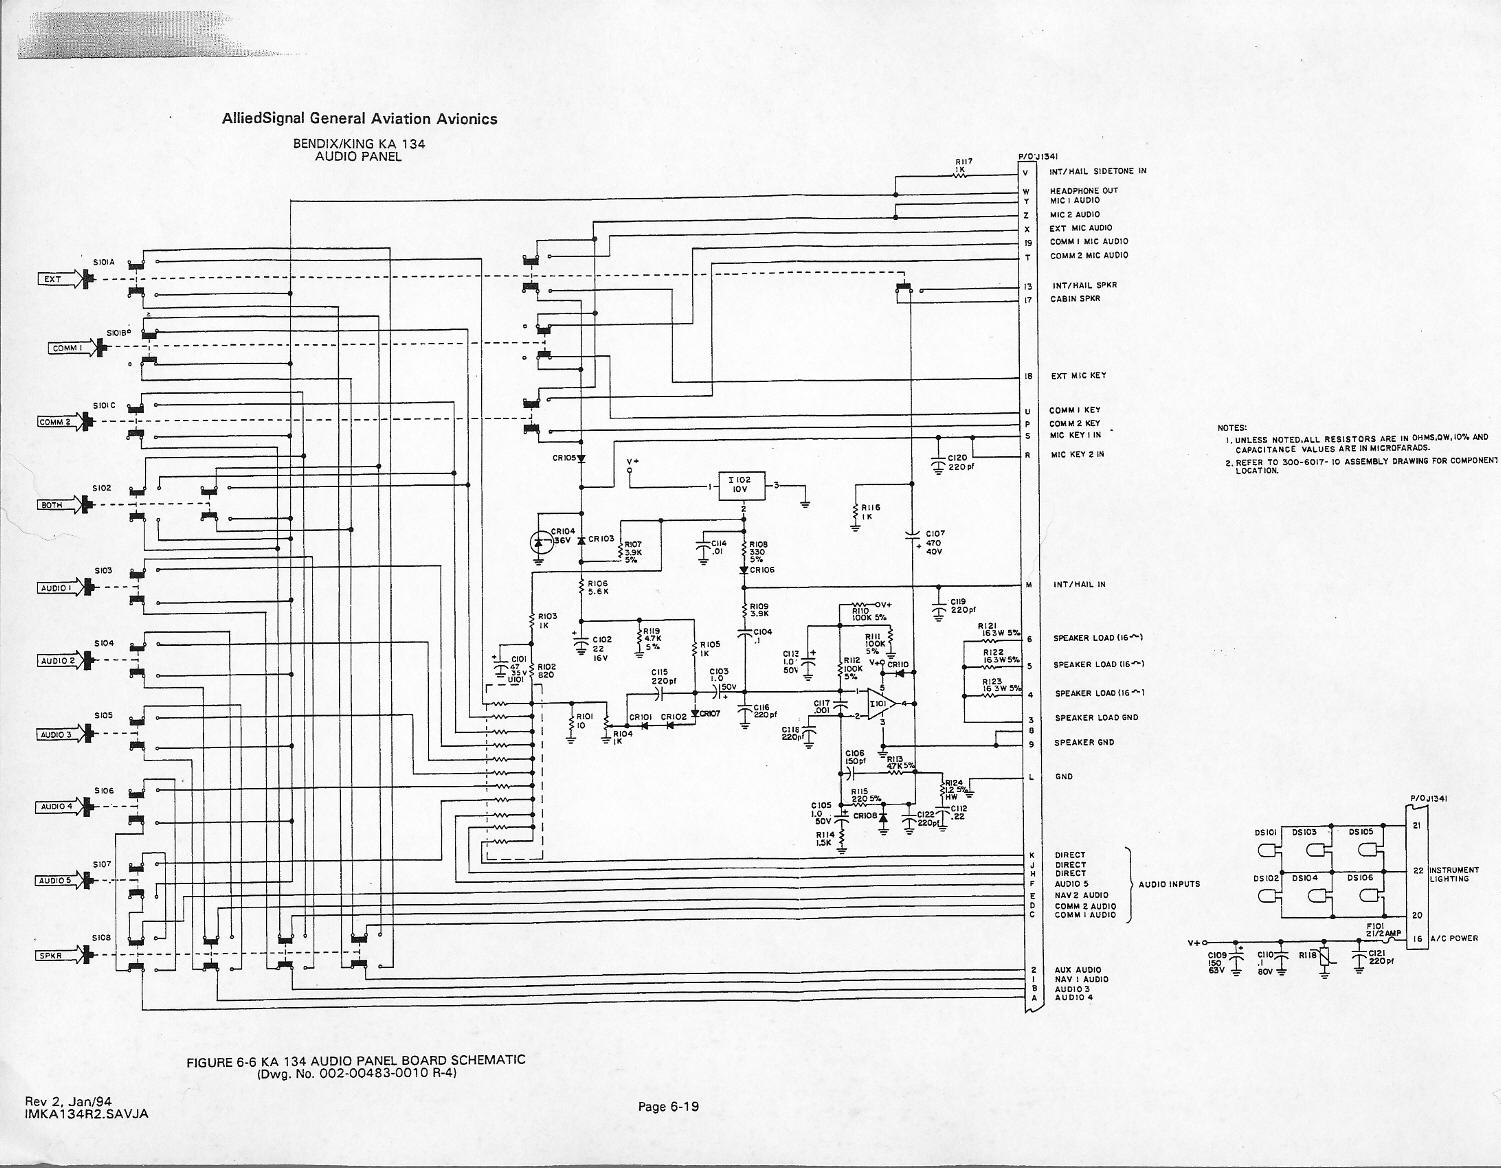 ka134_r4 first flight prep king ka 134 audio panel wiring diagram at cos-gaming.co